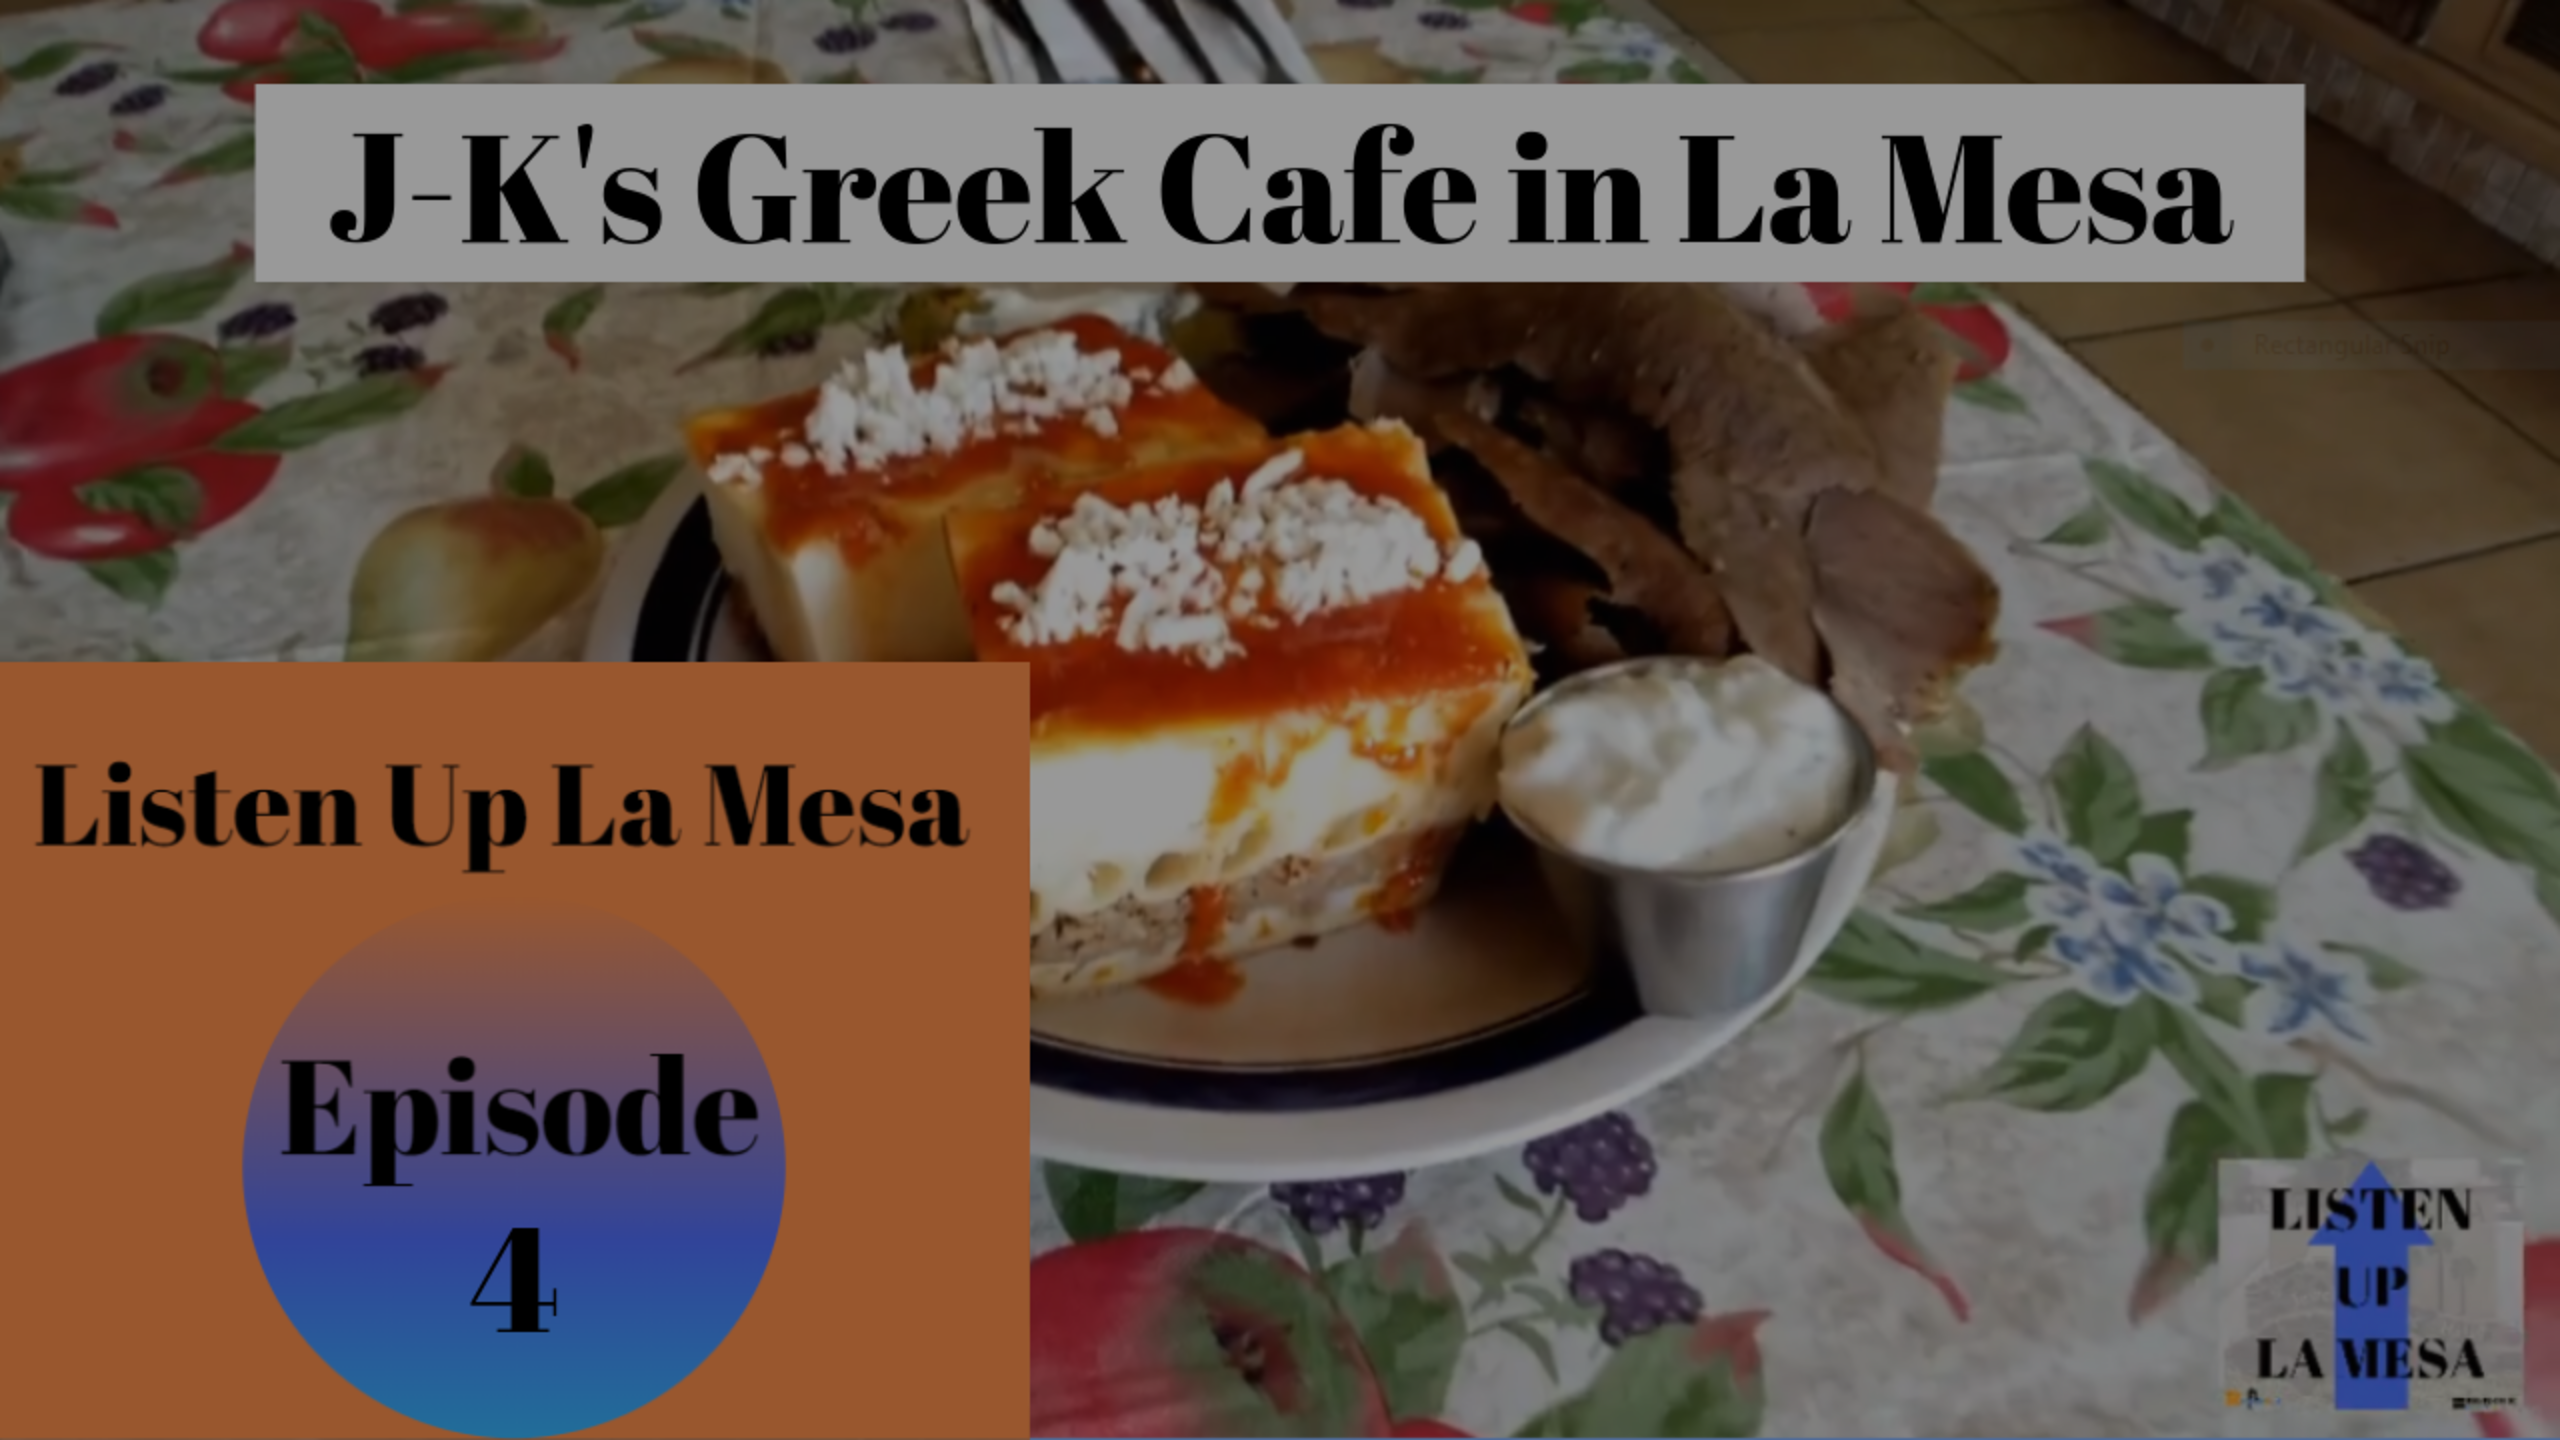 Listen Up La Mesa Ep 4 J-K's Greek Cafe in La Mesa, CA